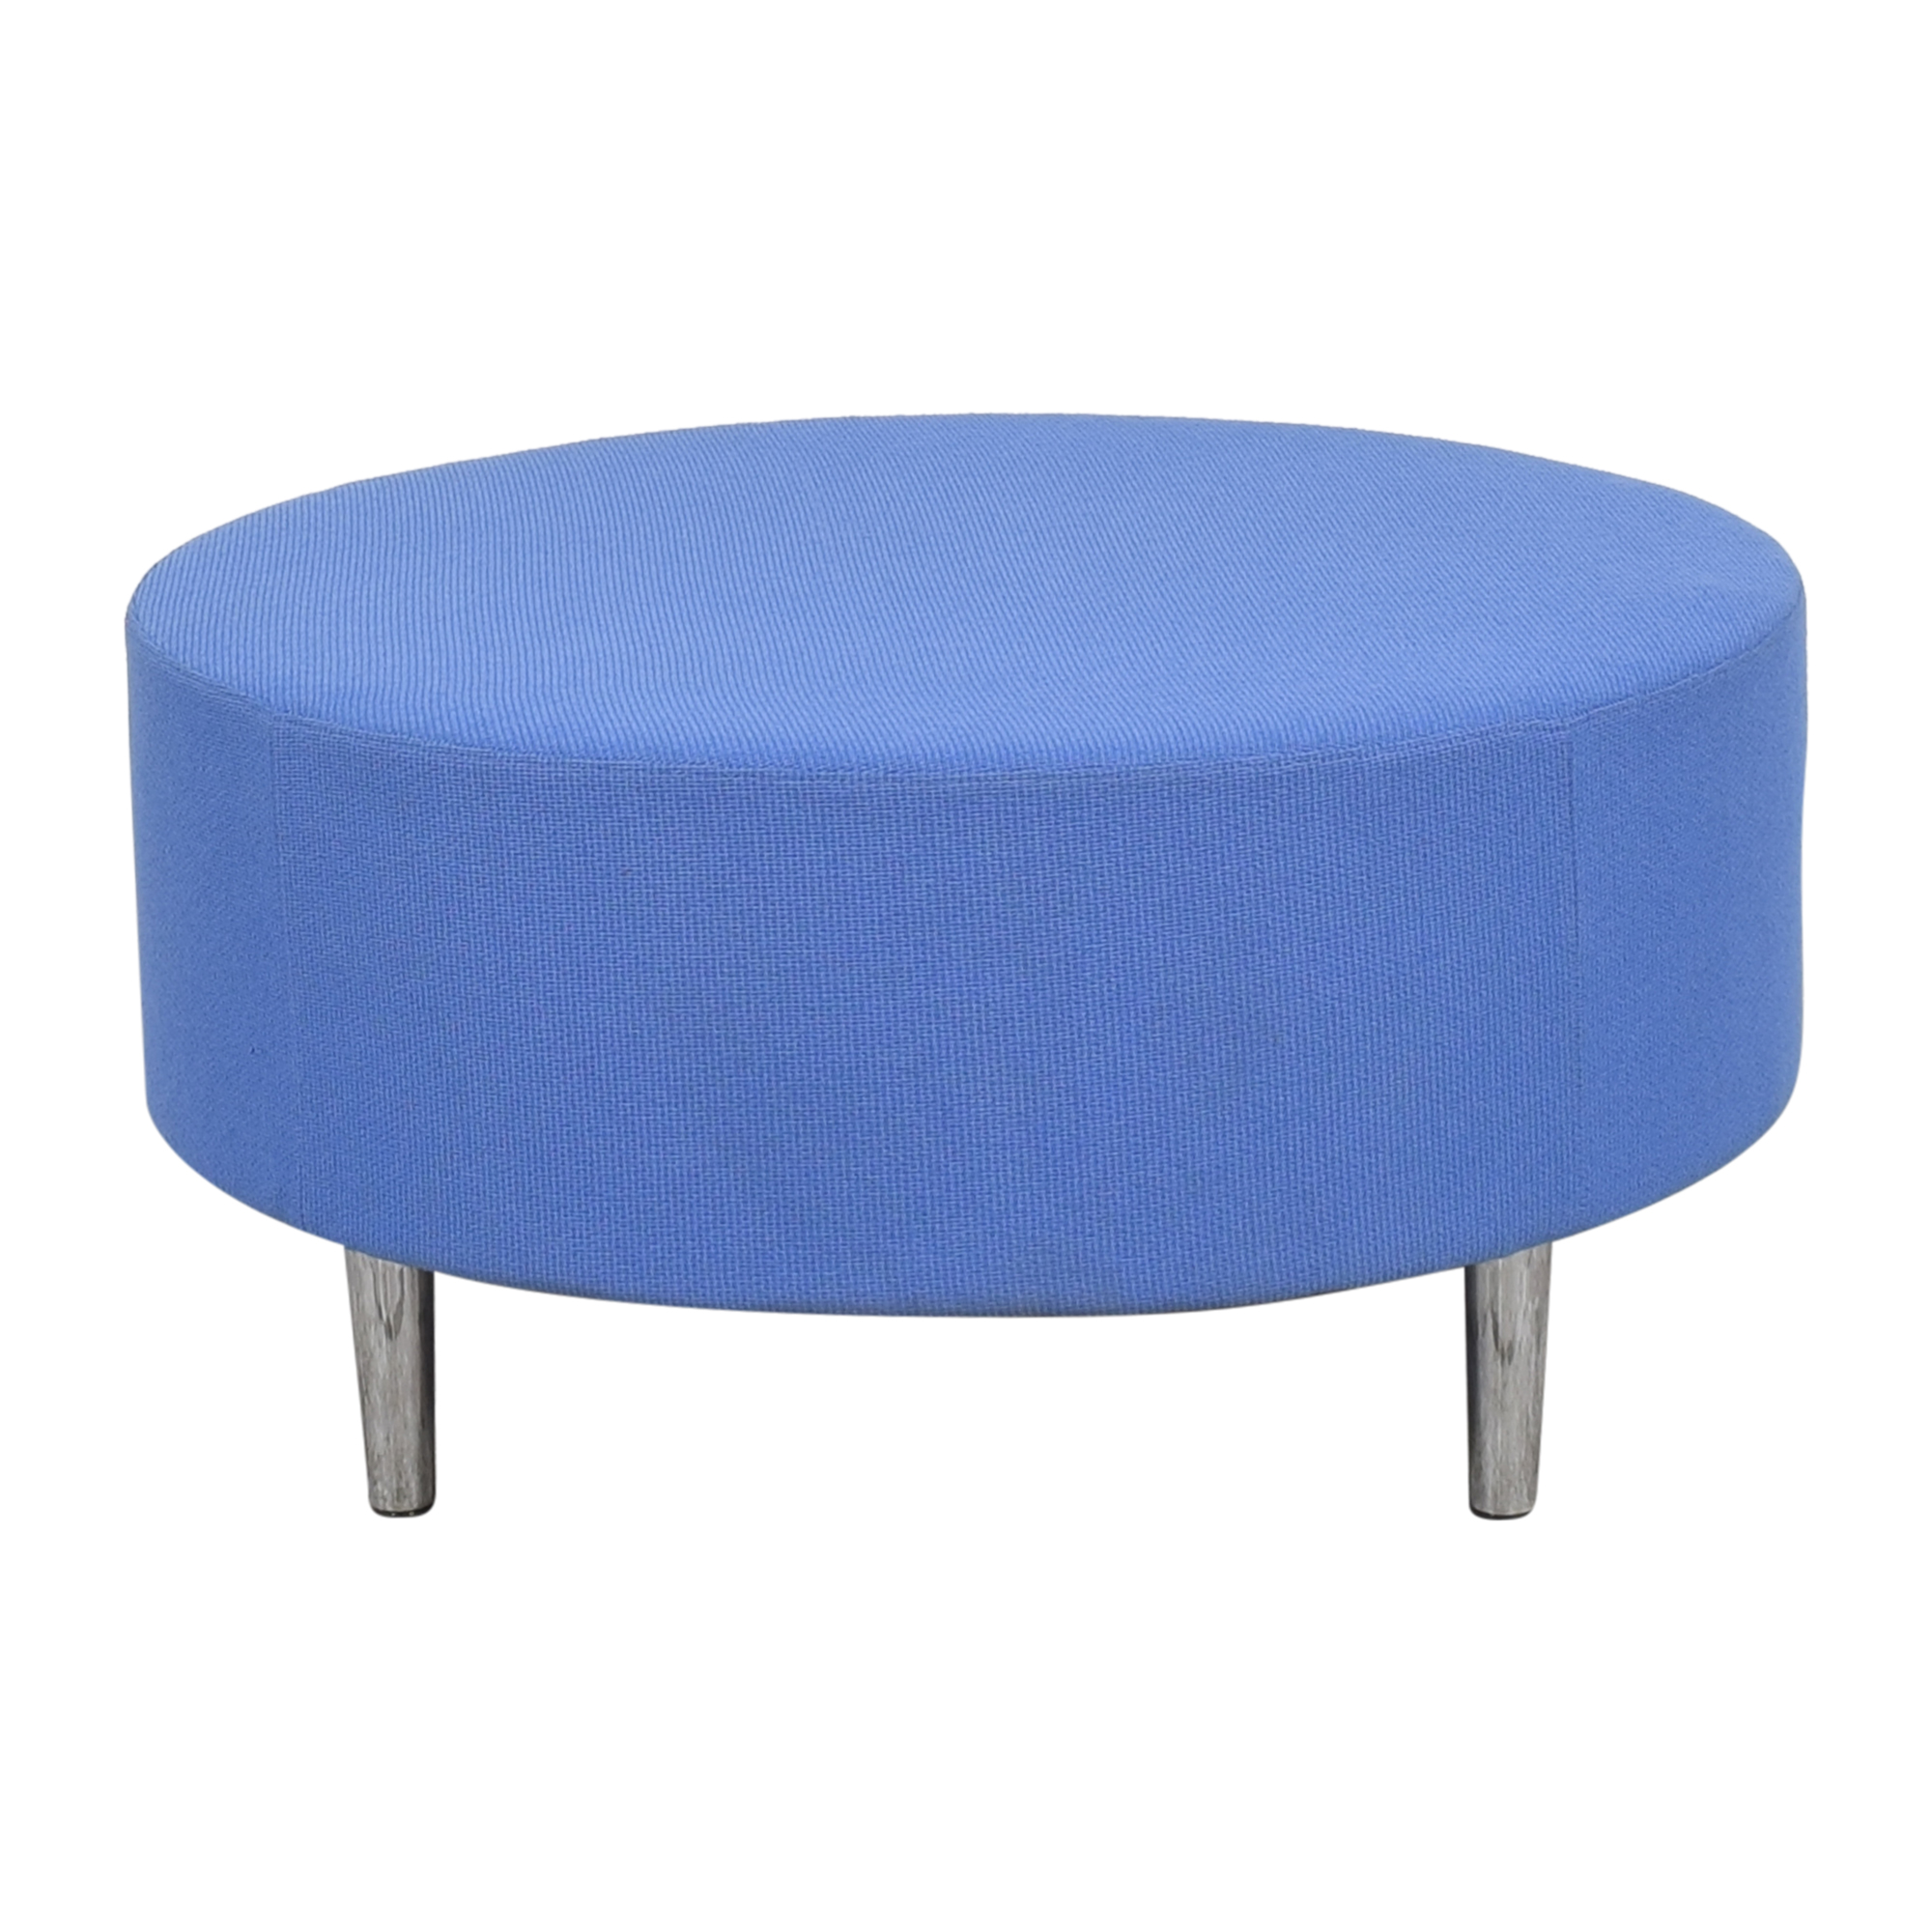 Global Furniture Group River Round Bench / Tables